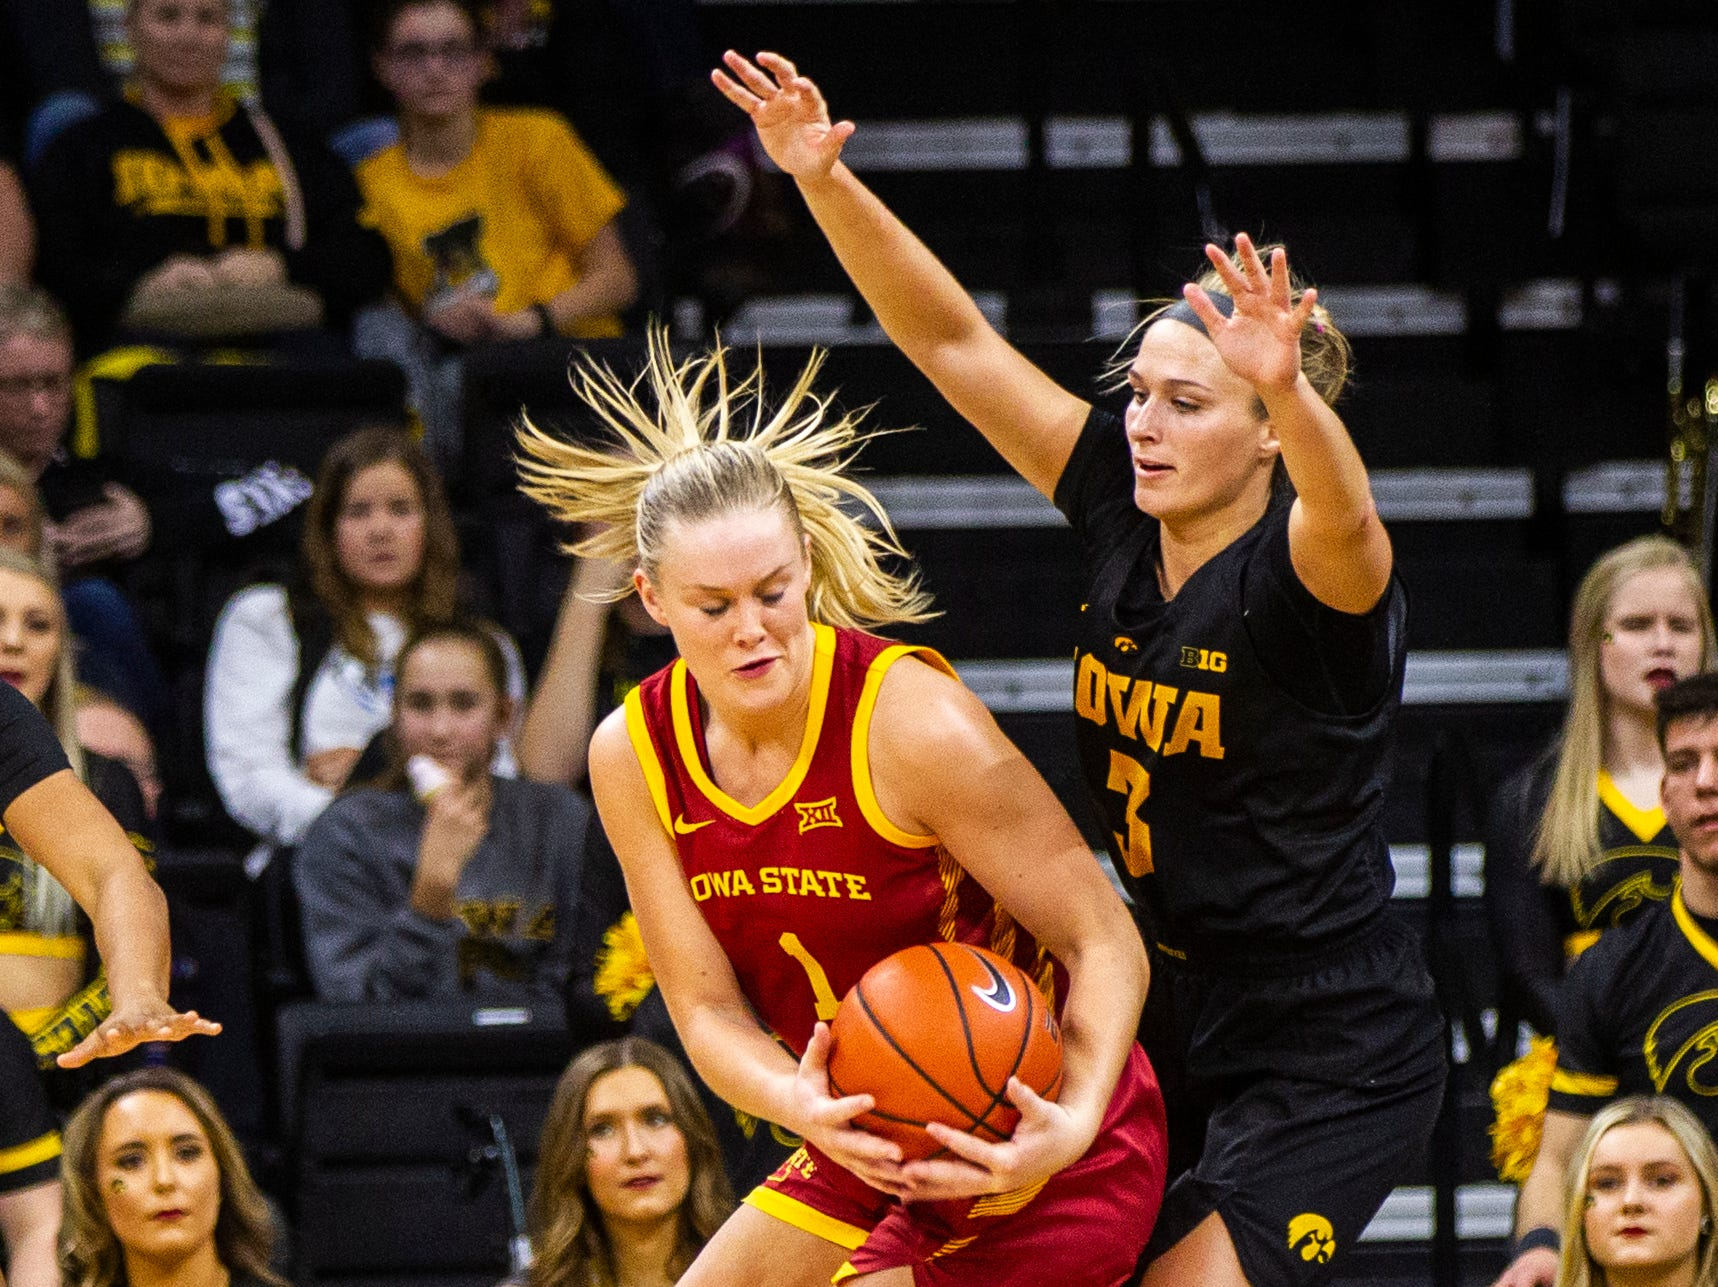 Iowa State forward Madison Wise (1) gets defended by Iowa guard Makenzie Meyer (3) during a Cy-Hawk series NCAA women's basketball game on Wednesday, Dec. 5, 2018, at Carver-Hawkeye Arena in Iowa City.